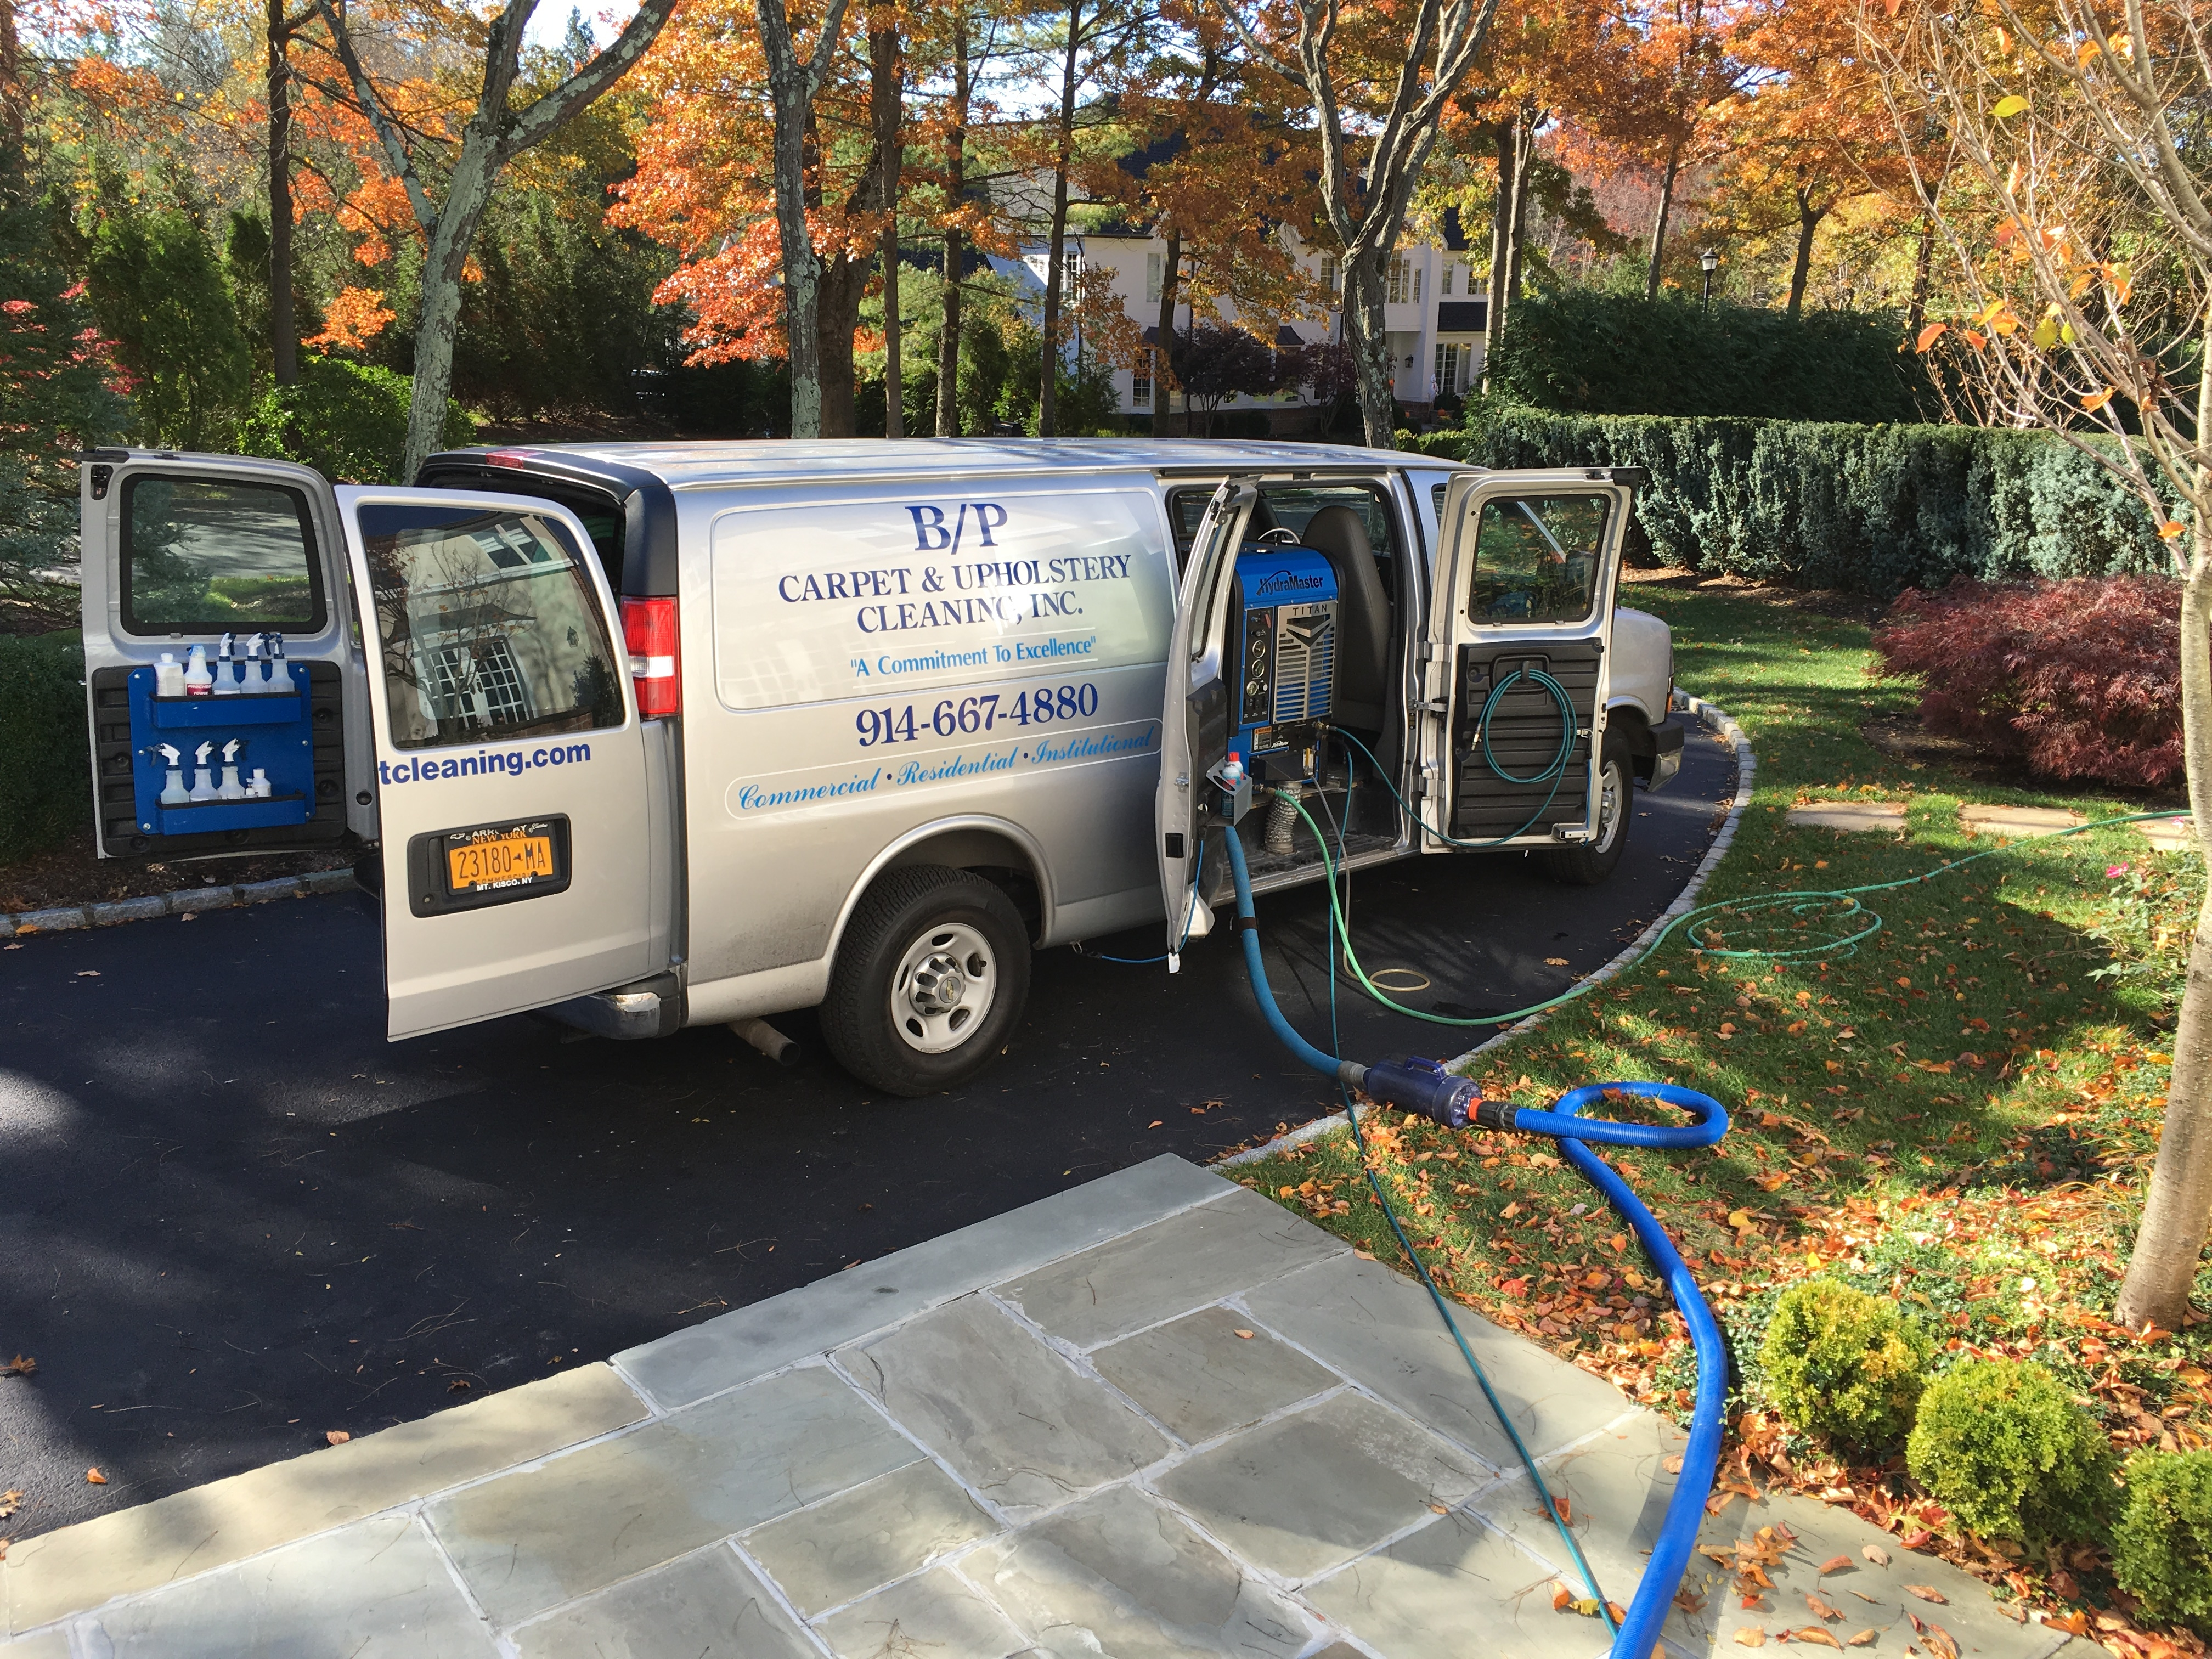 B/P Carpet & Upholstery Cleaning Inc image 13